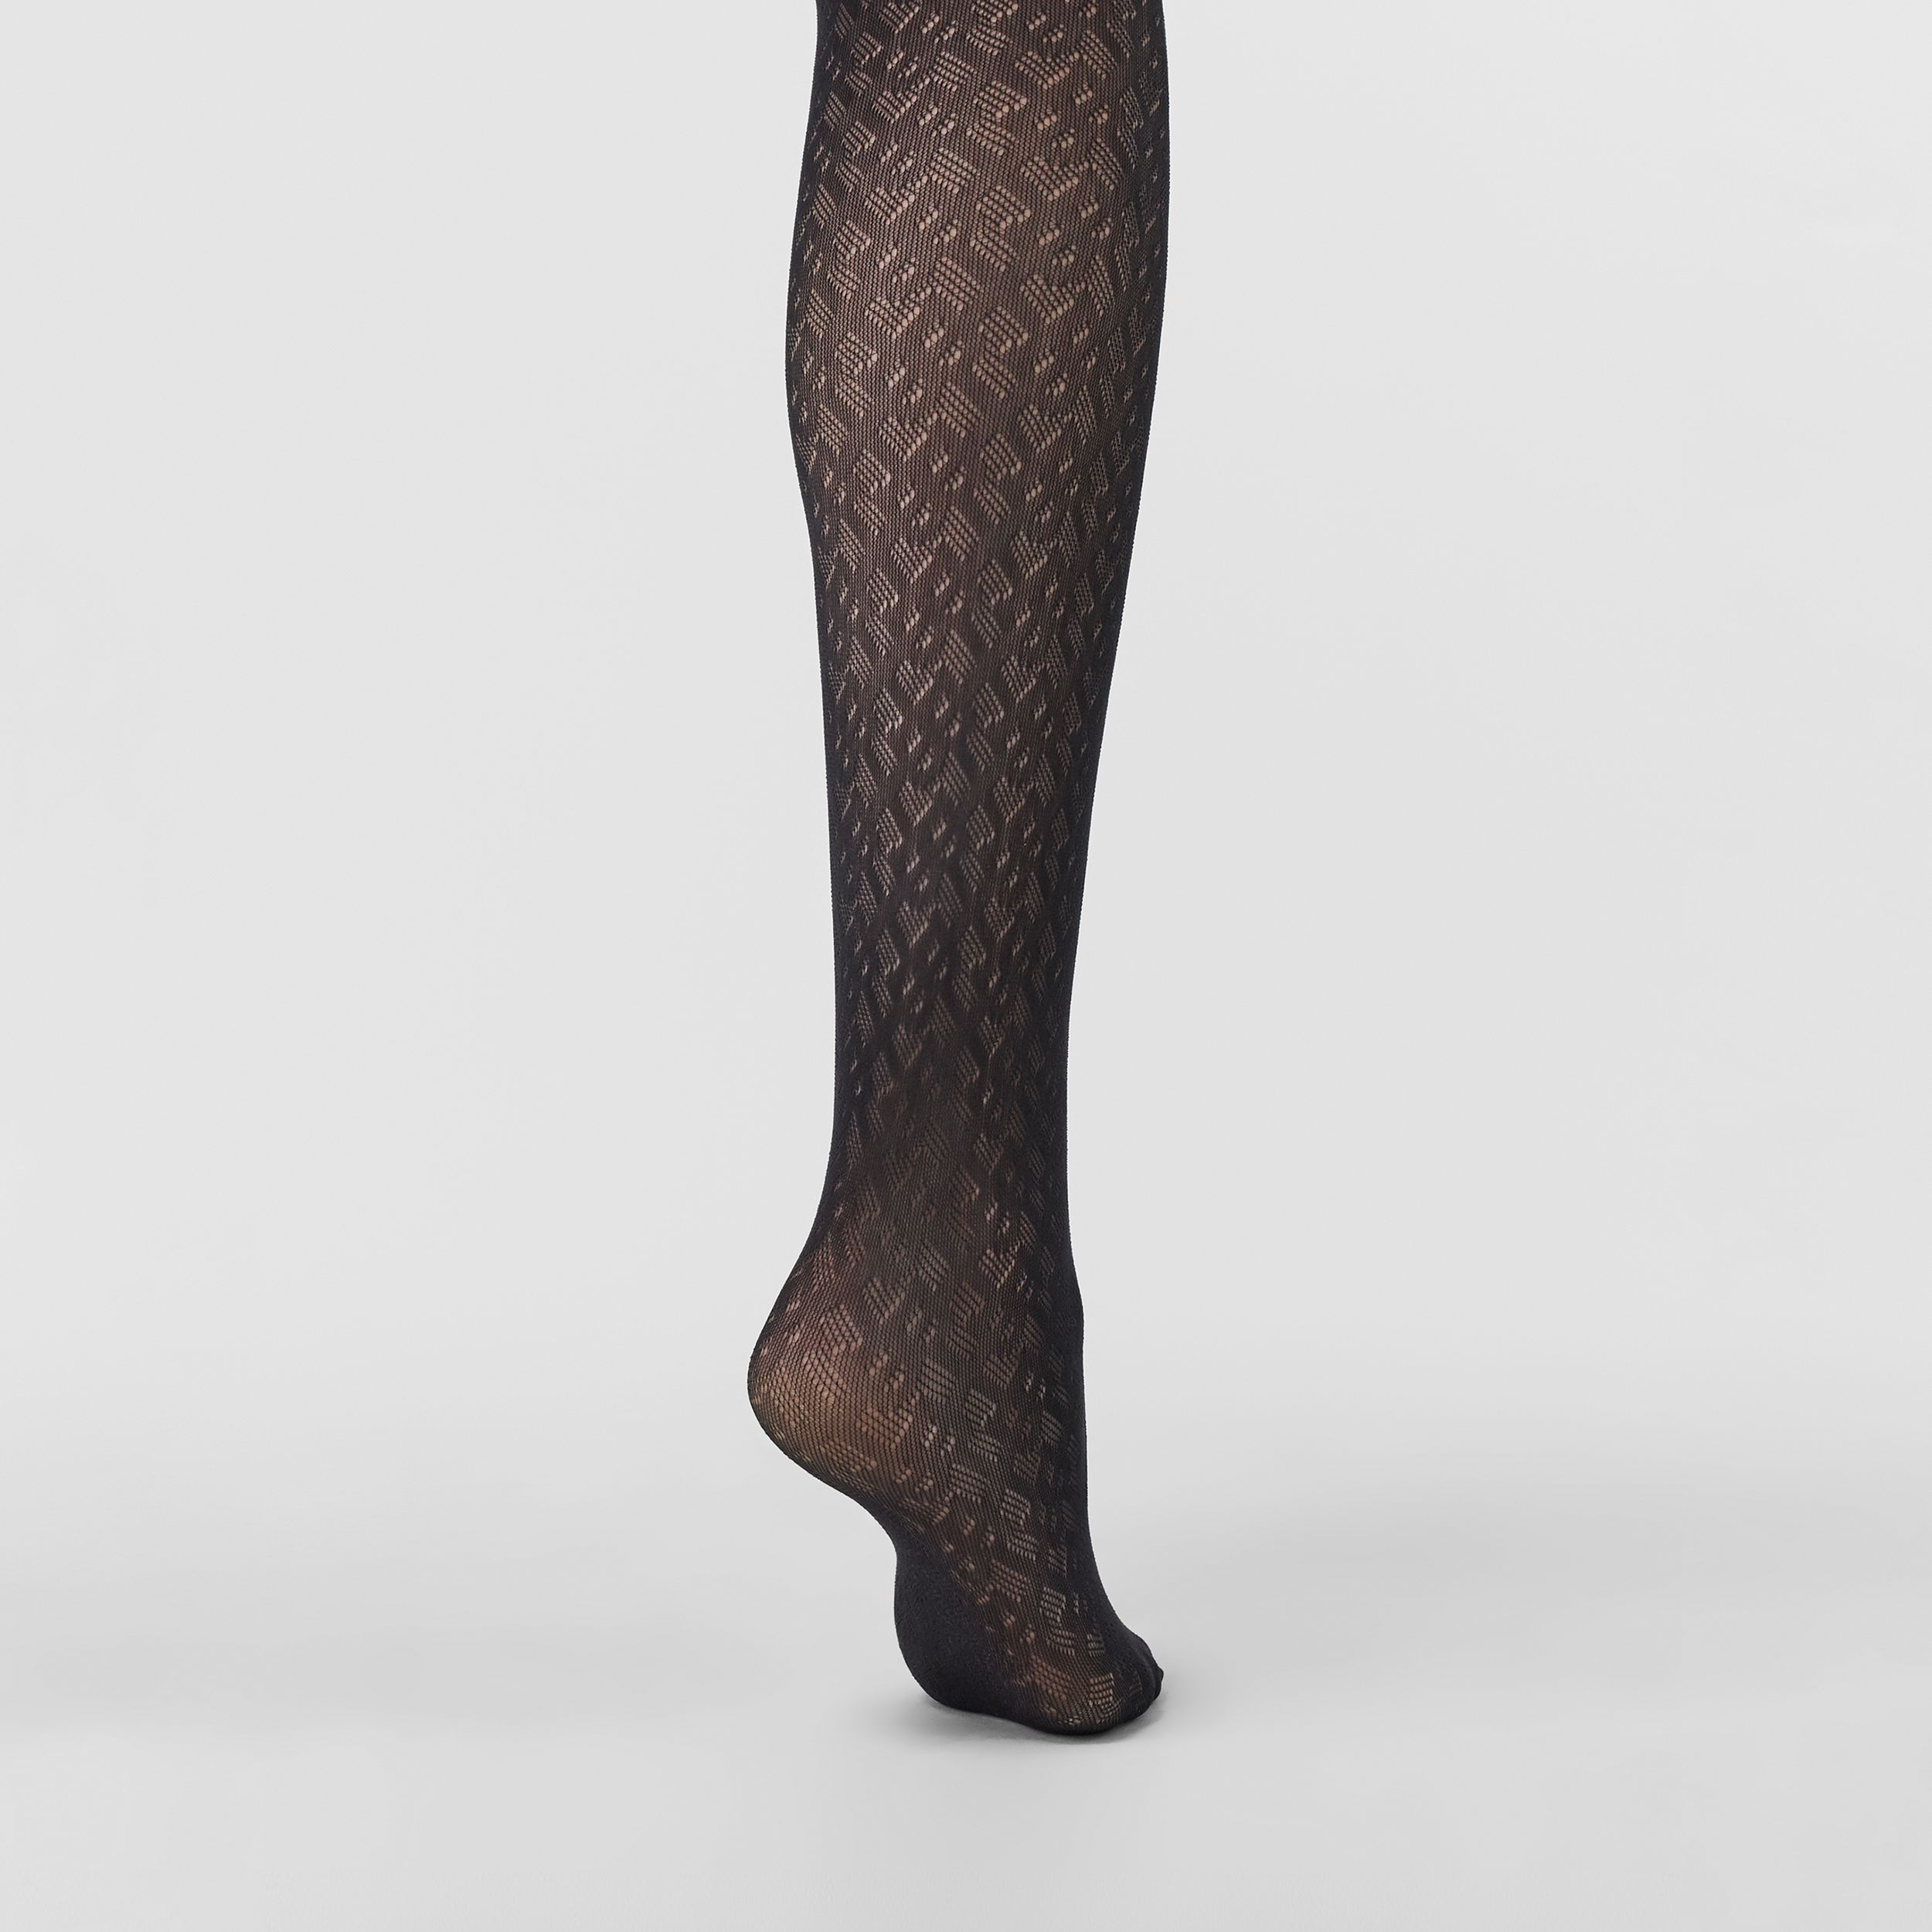 Monogram Motif Tights in Black - Women | Burberry United States - 3